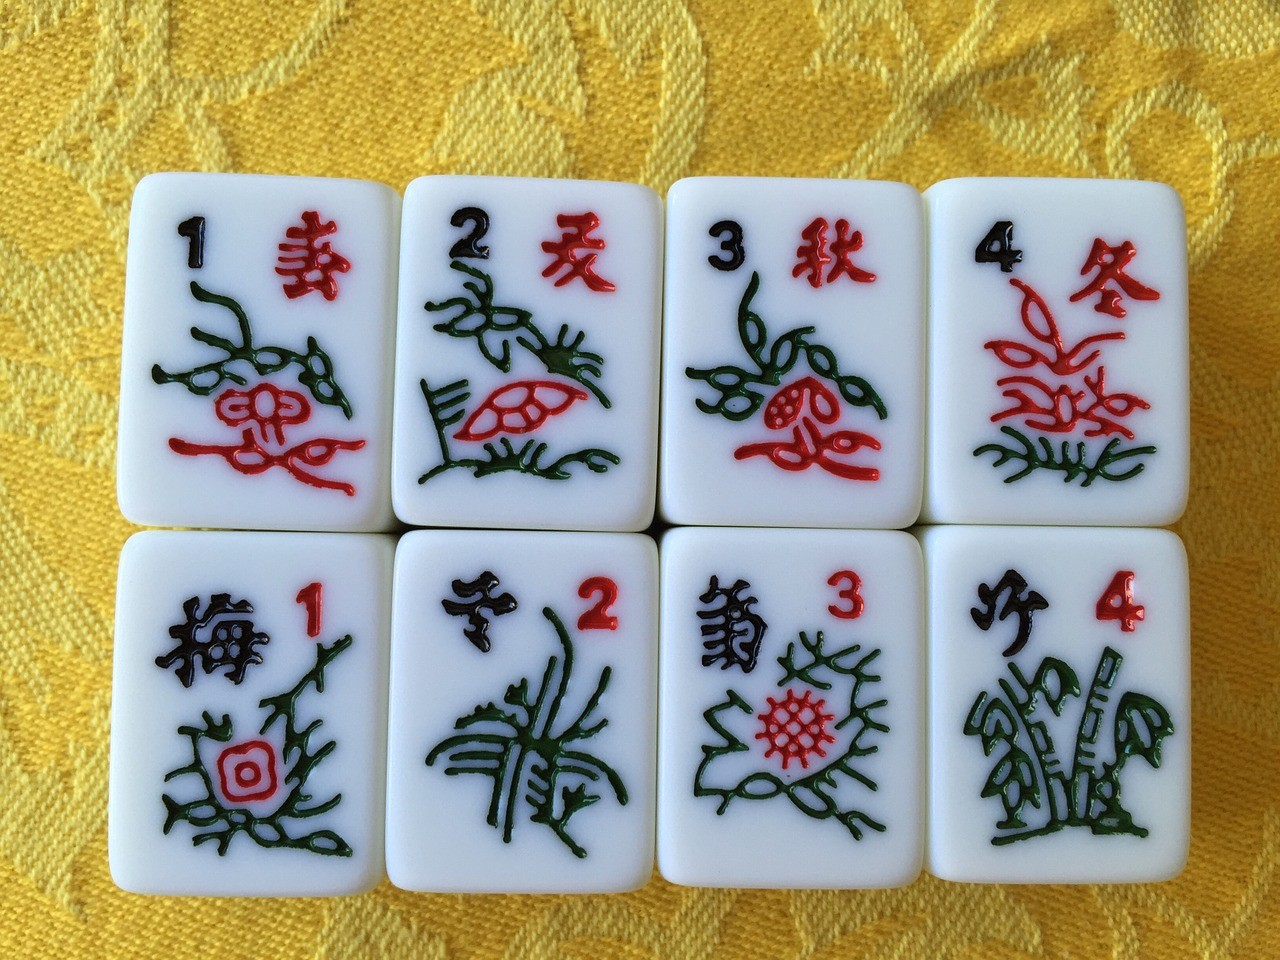 Here Are The Strategies To Keep In Mind While Playing Mahjong Tiles